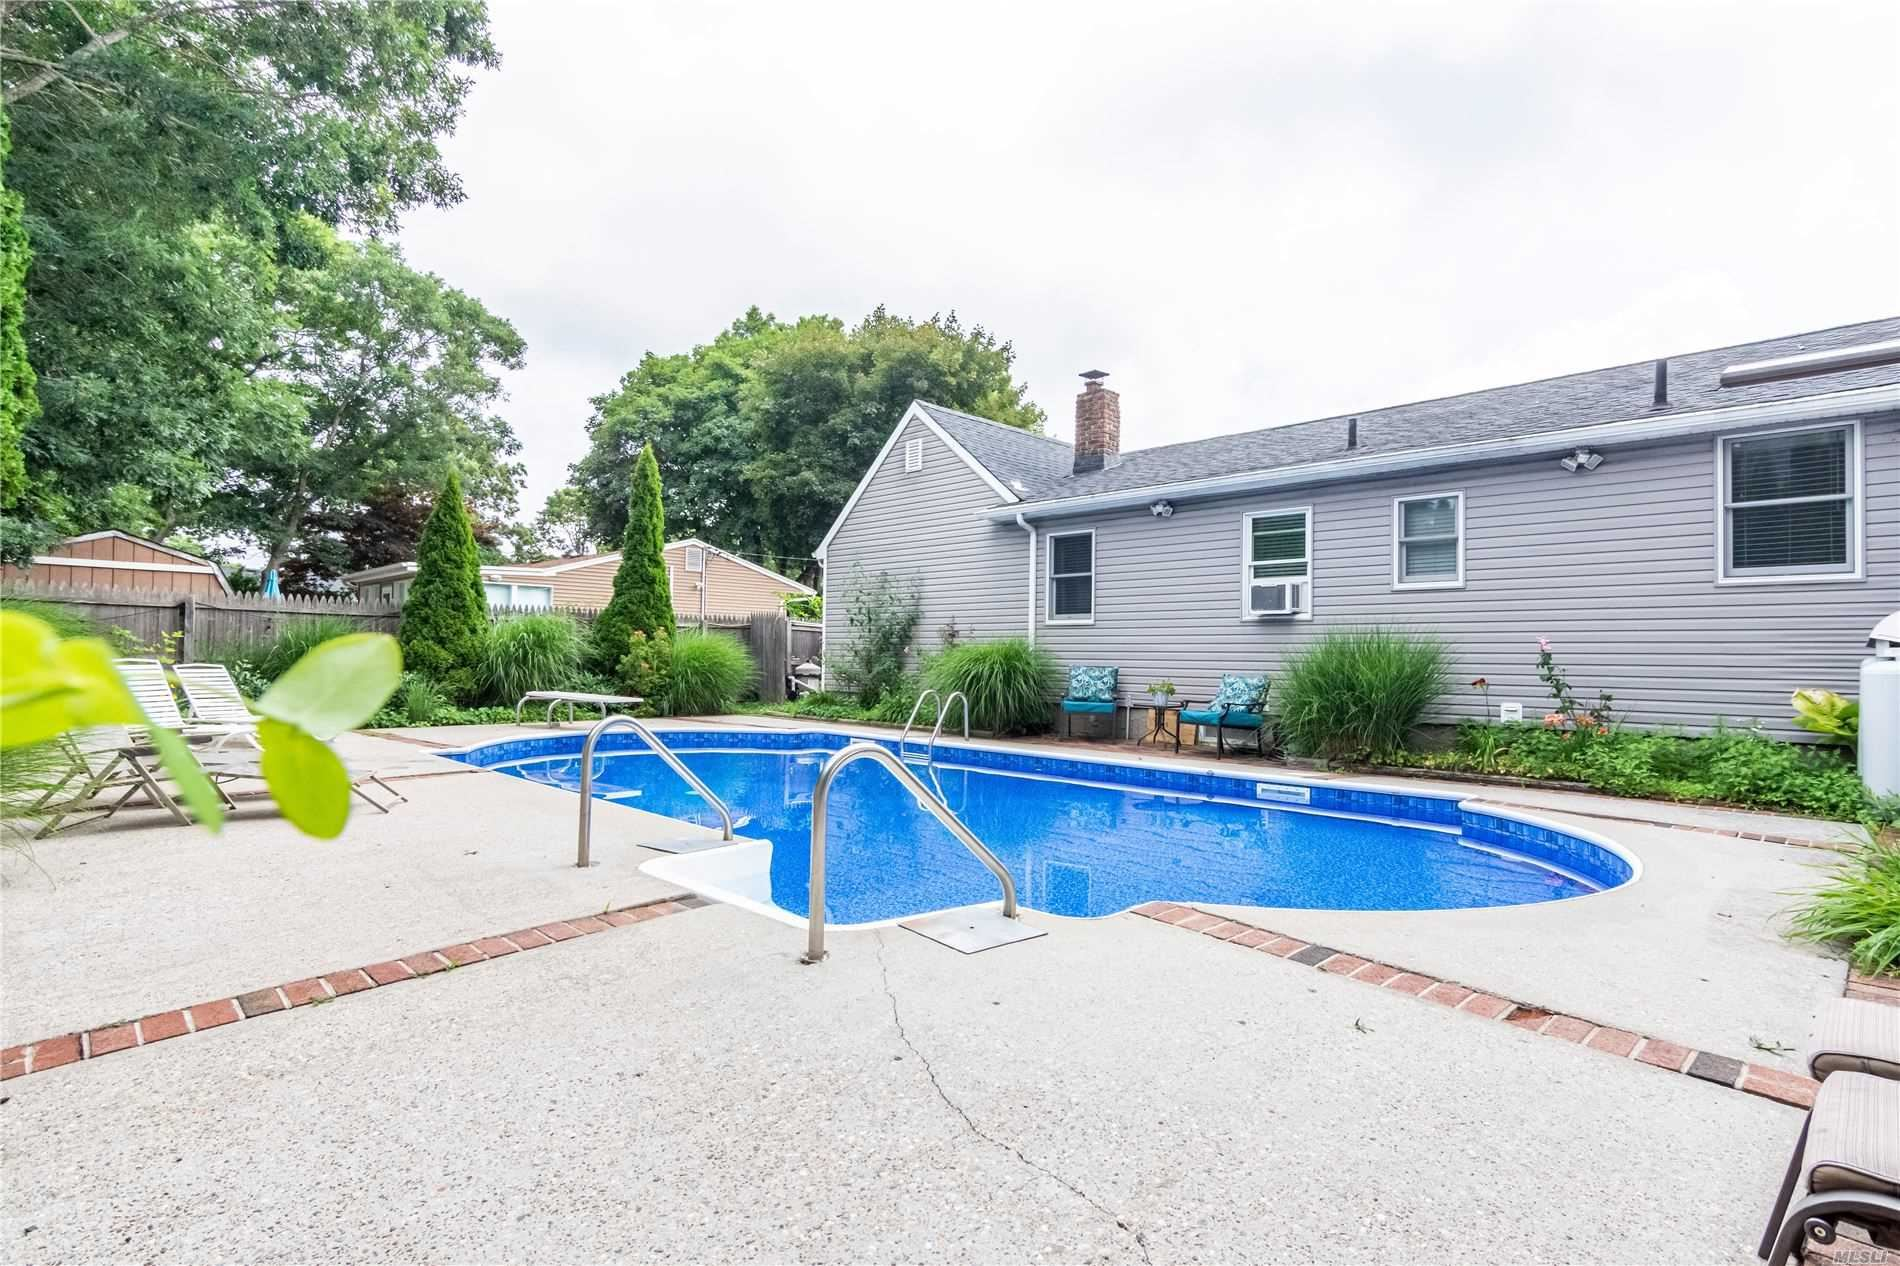 1488 Harlem Ave, Patchogue, NY 11772 - MLS#: 3231003